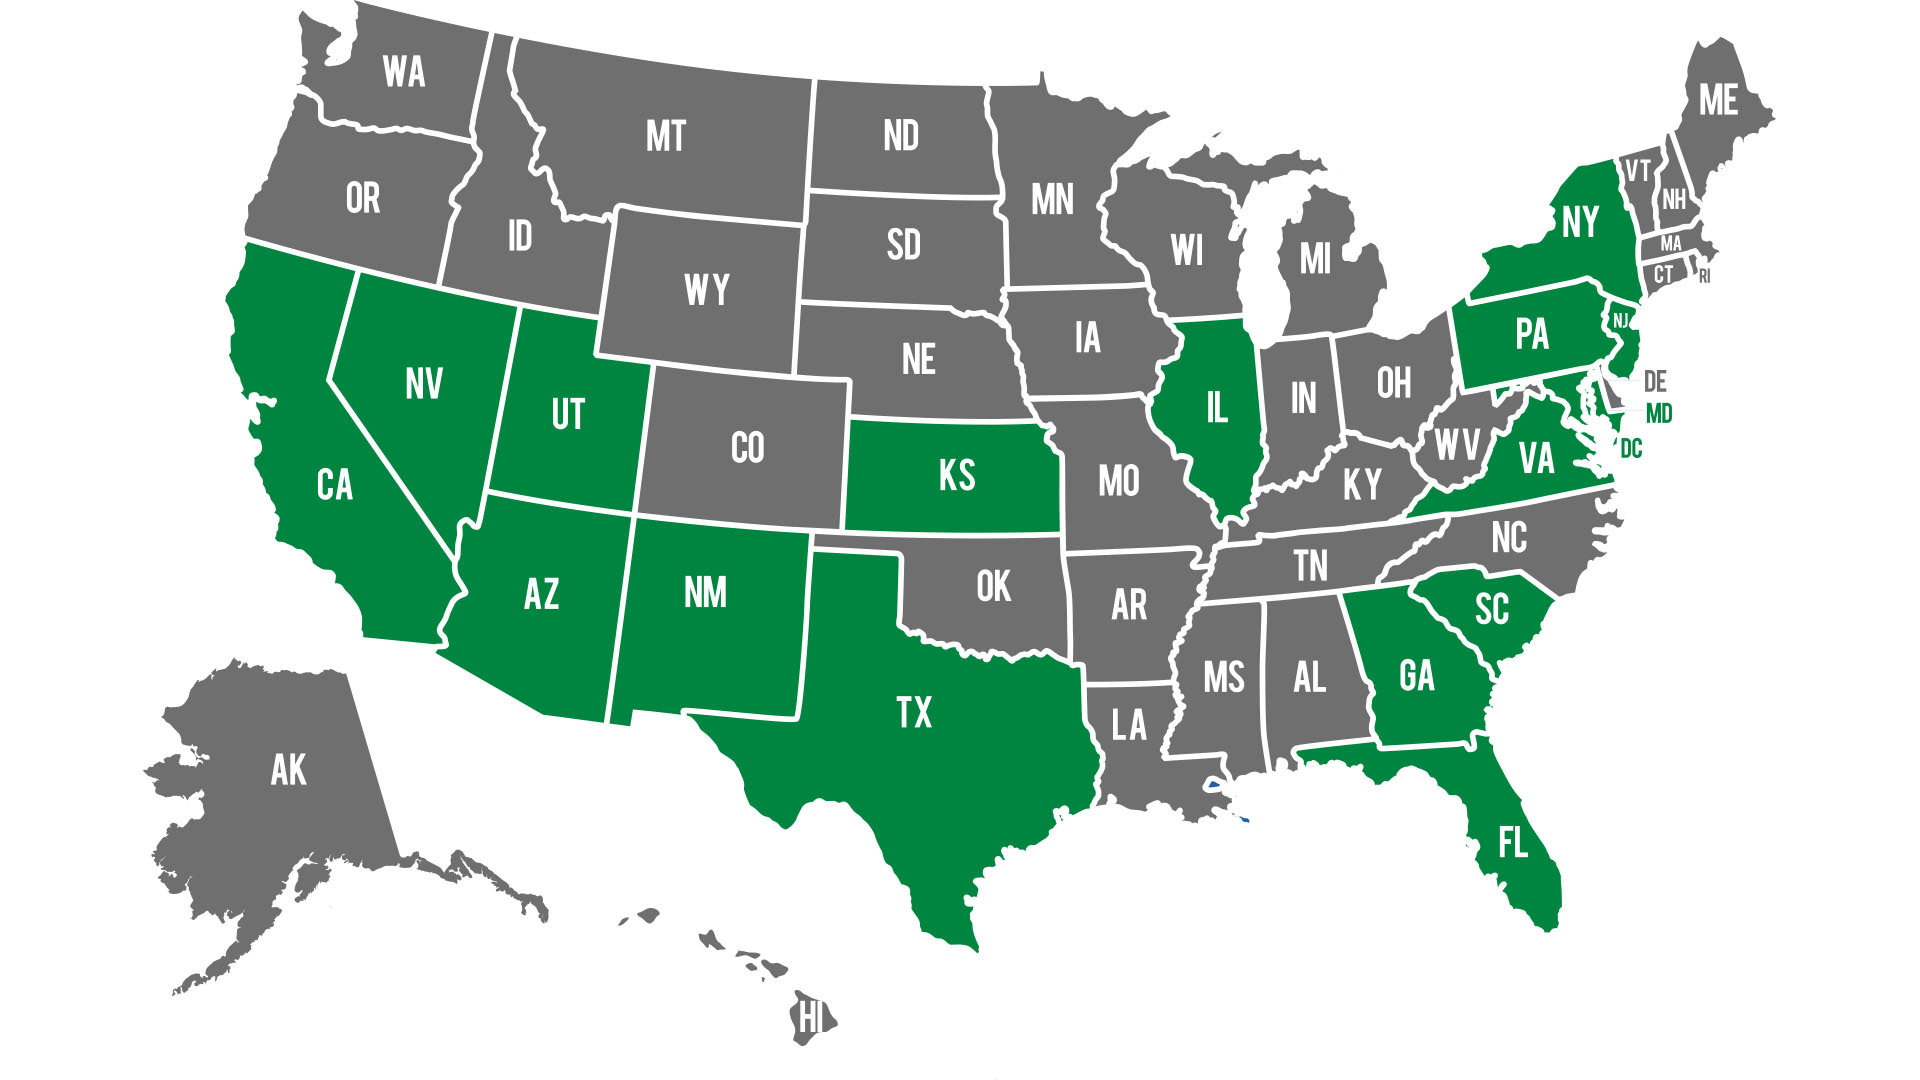 a united states map with pestmaster services locations